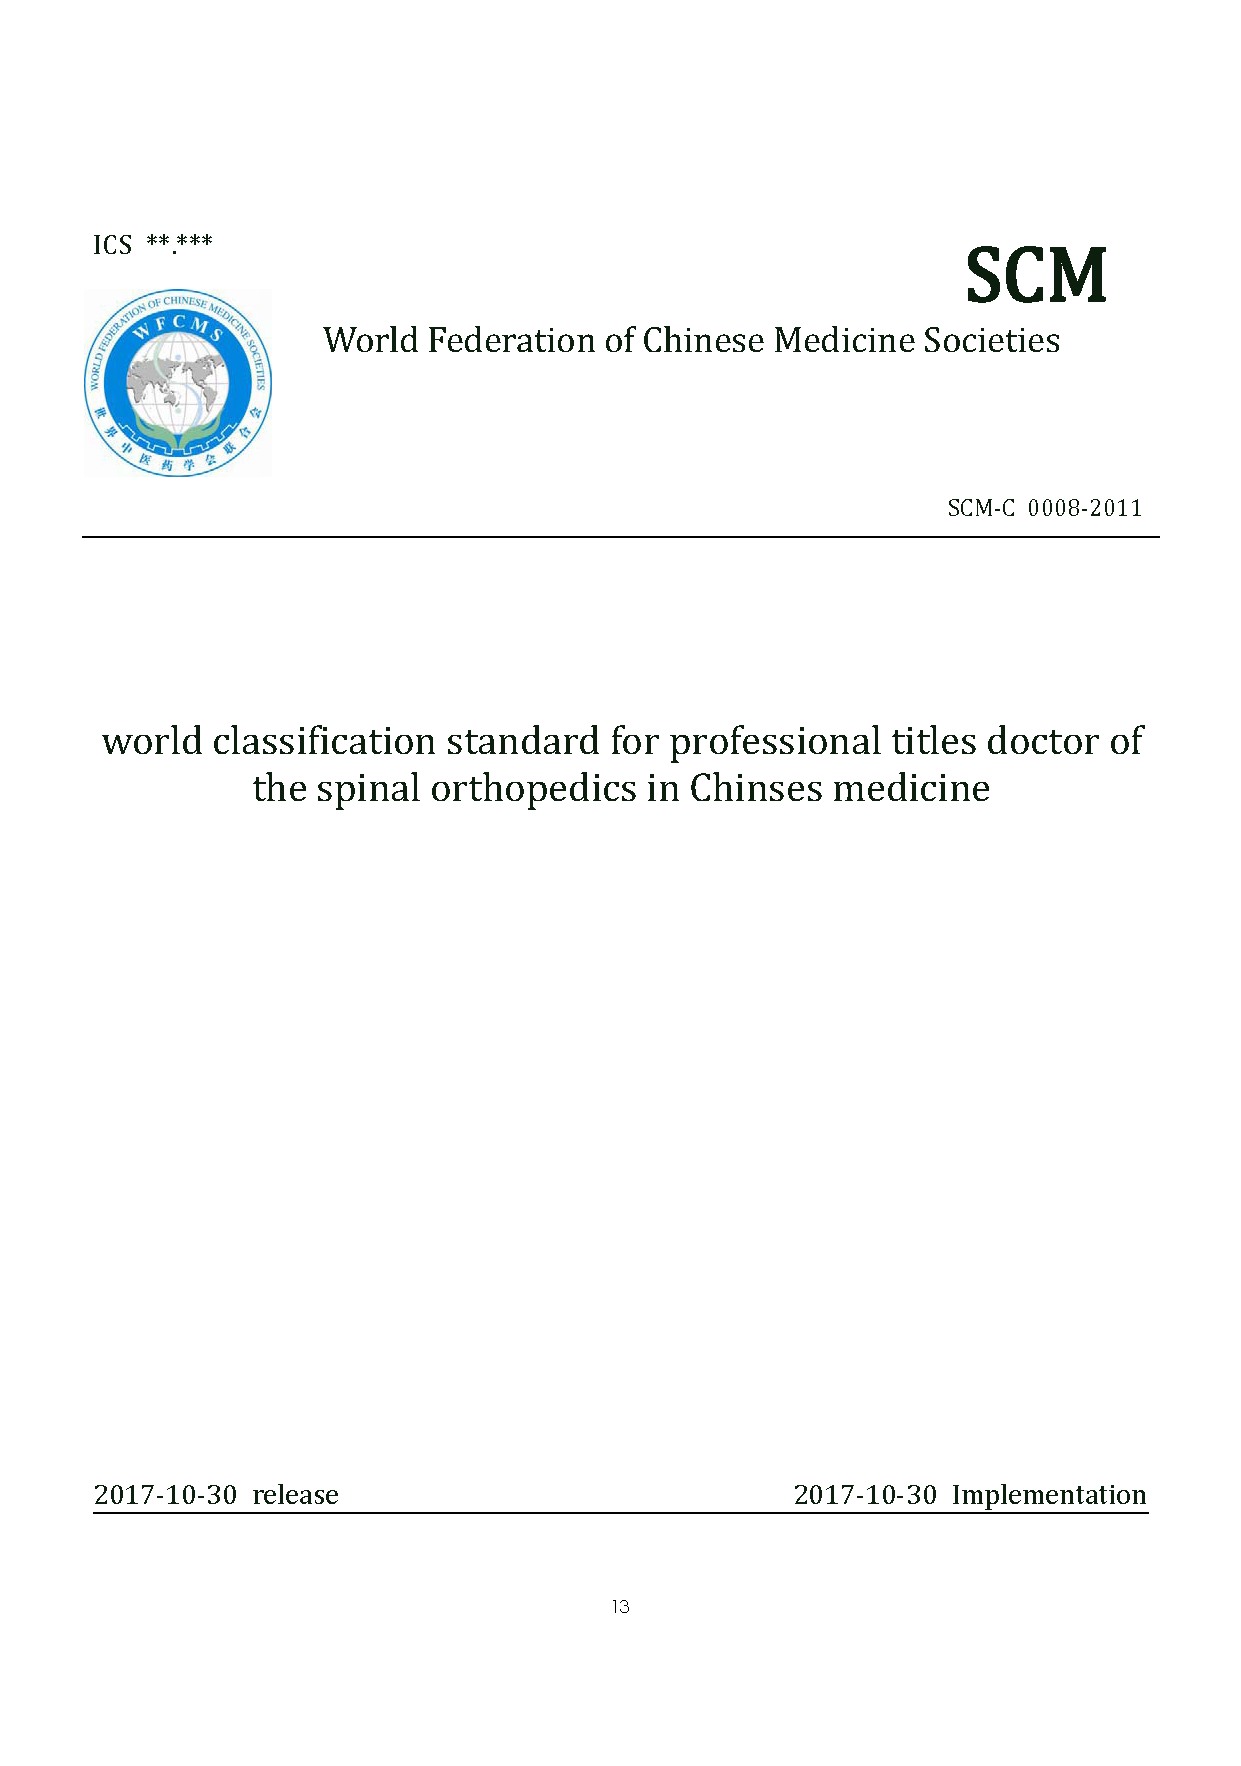 World_Classification_Standard_for_Professional_Titles_Doctor_of_The_Spinal_Orthopedics_in_Chinses_Medicine